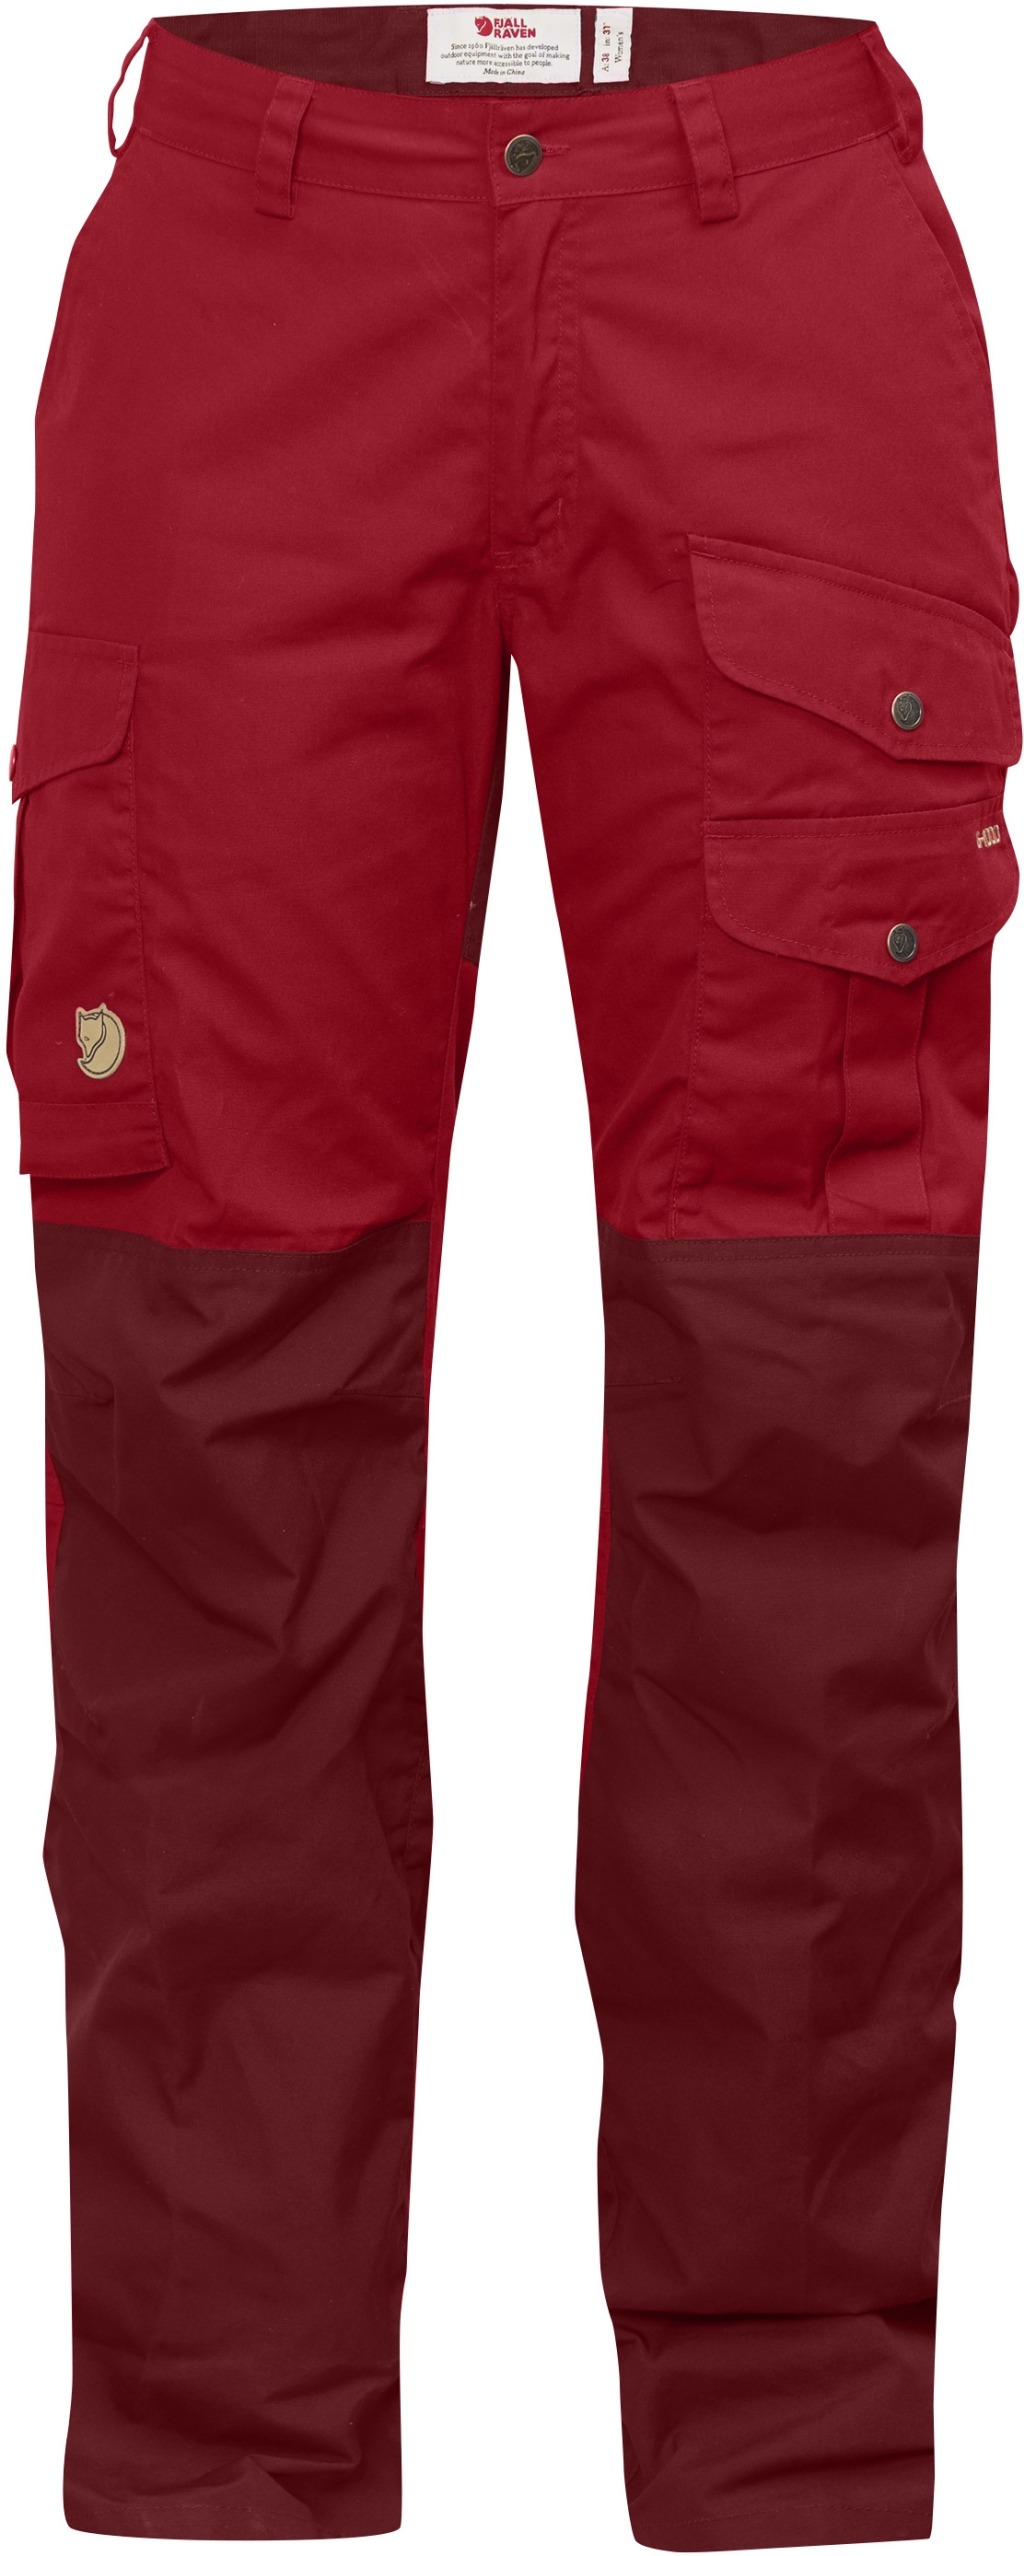 FjallRaven Barents Pro Trousers Curved W Deep Red-30